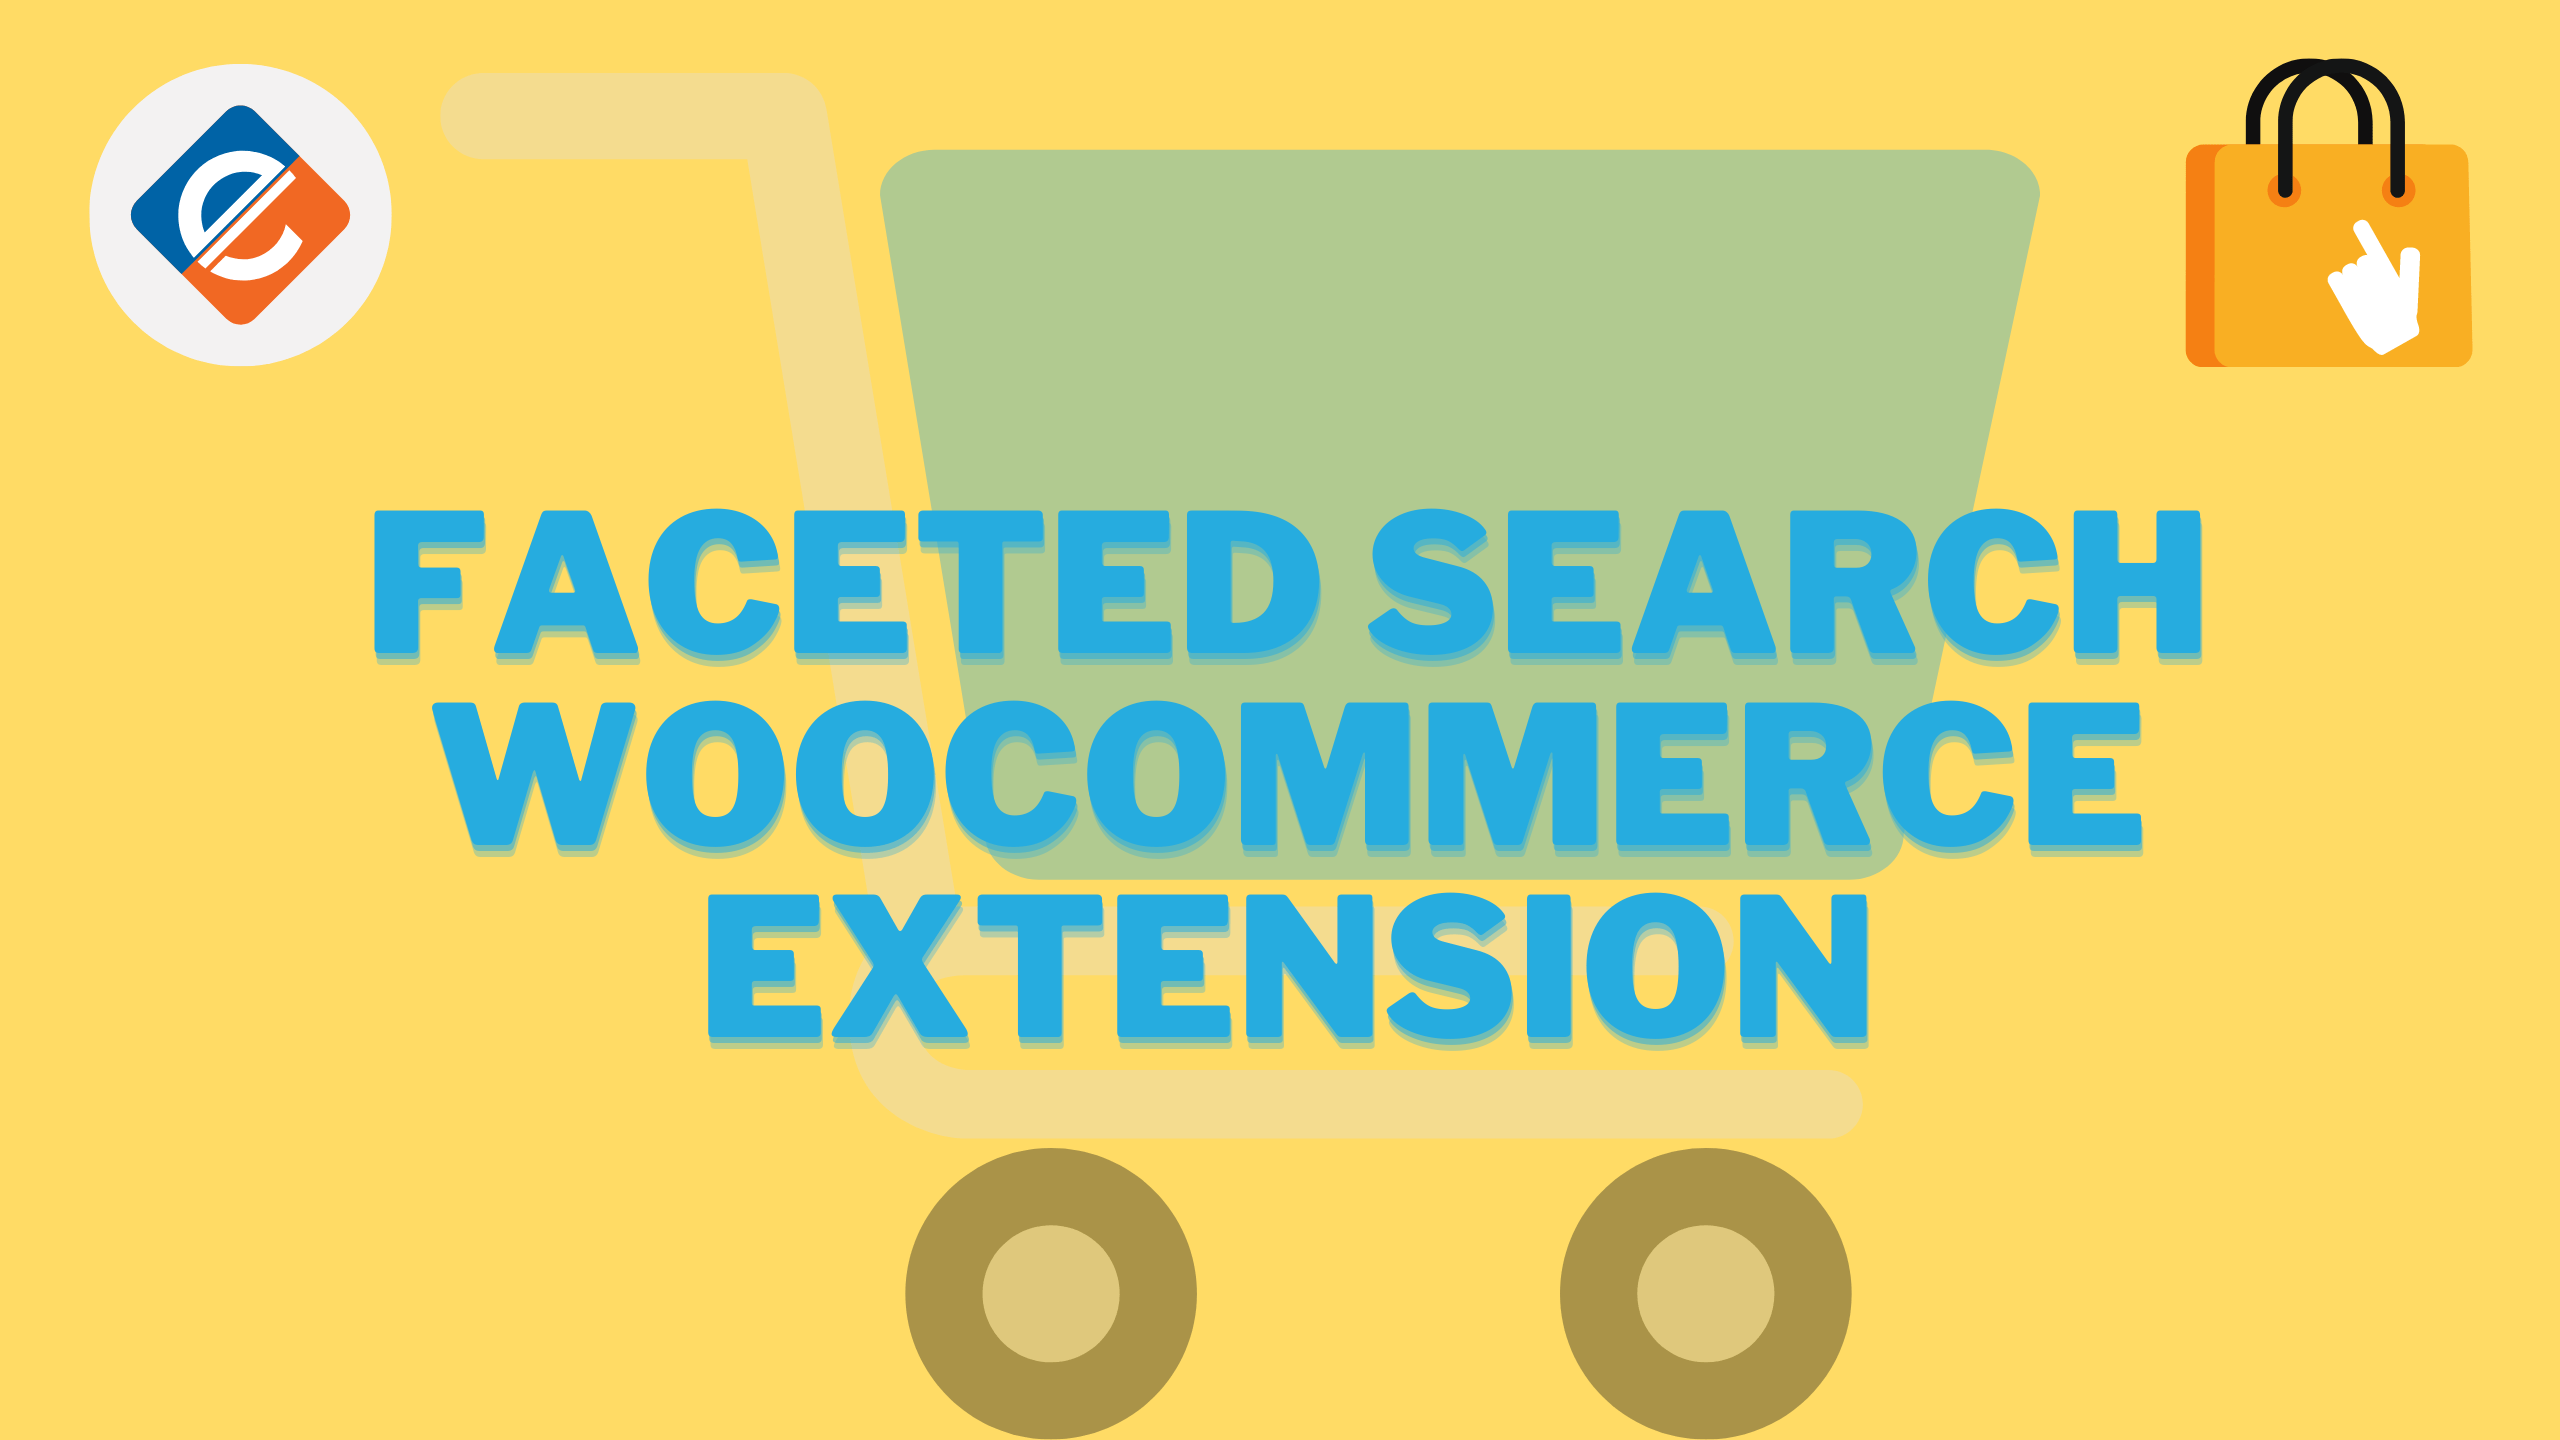 Faceted Search Woocommerce Extension